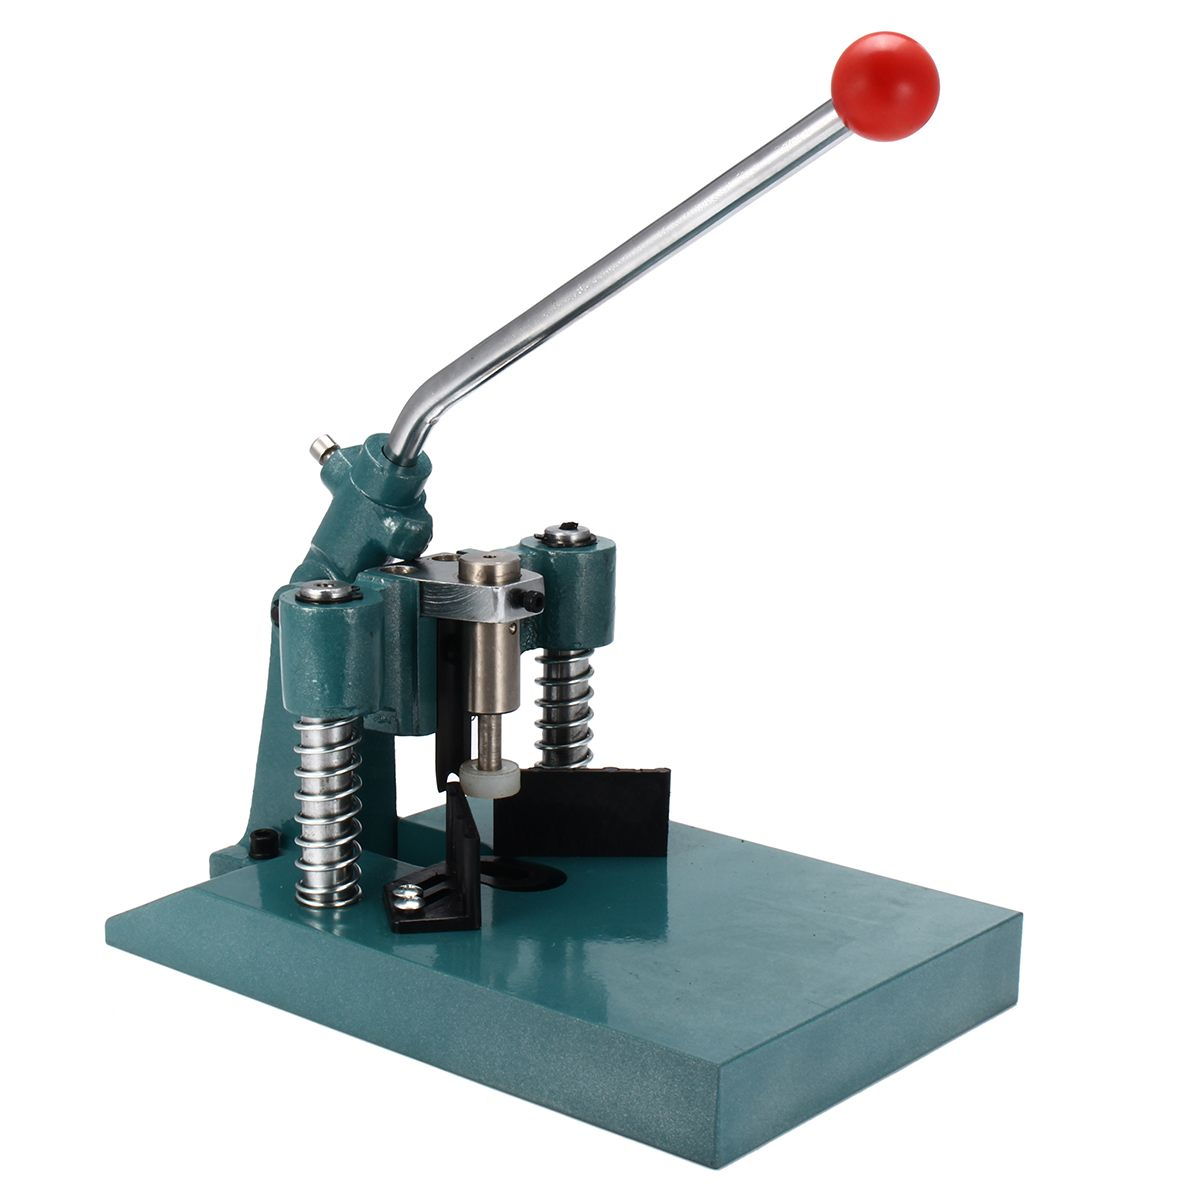 Manual Corner Rounder Punch Metal Cutter with Two Kinds Blades R6(1/4Inch) R10(3/8Inch) PVC Paper Alumium Stack Machine ToolsManual Corner Rounder Punch Metal Cutter with Two Kinds Blades R6(1/4Inch) R10(3/8Inch) PVC Paper Alumium Stack Machine Tools